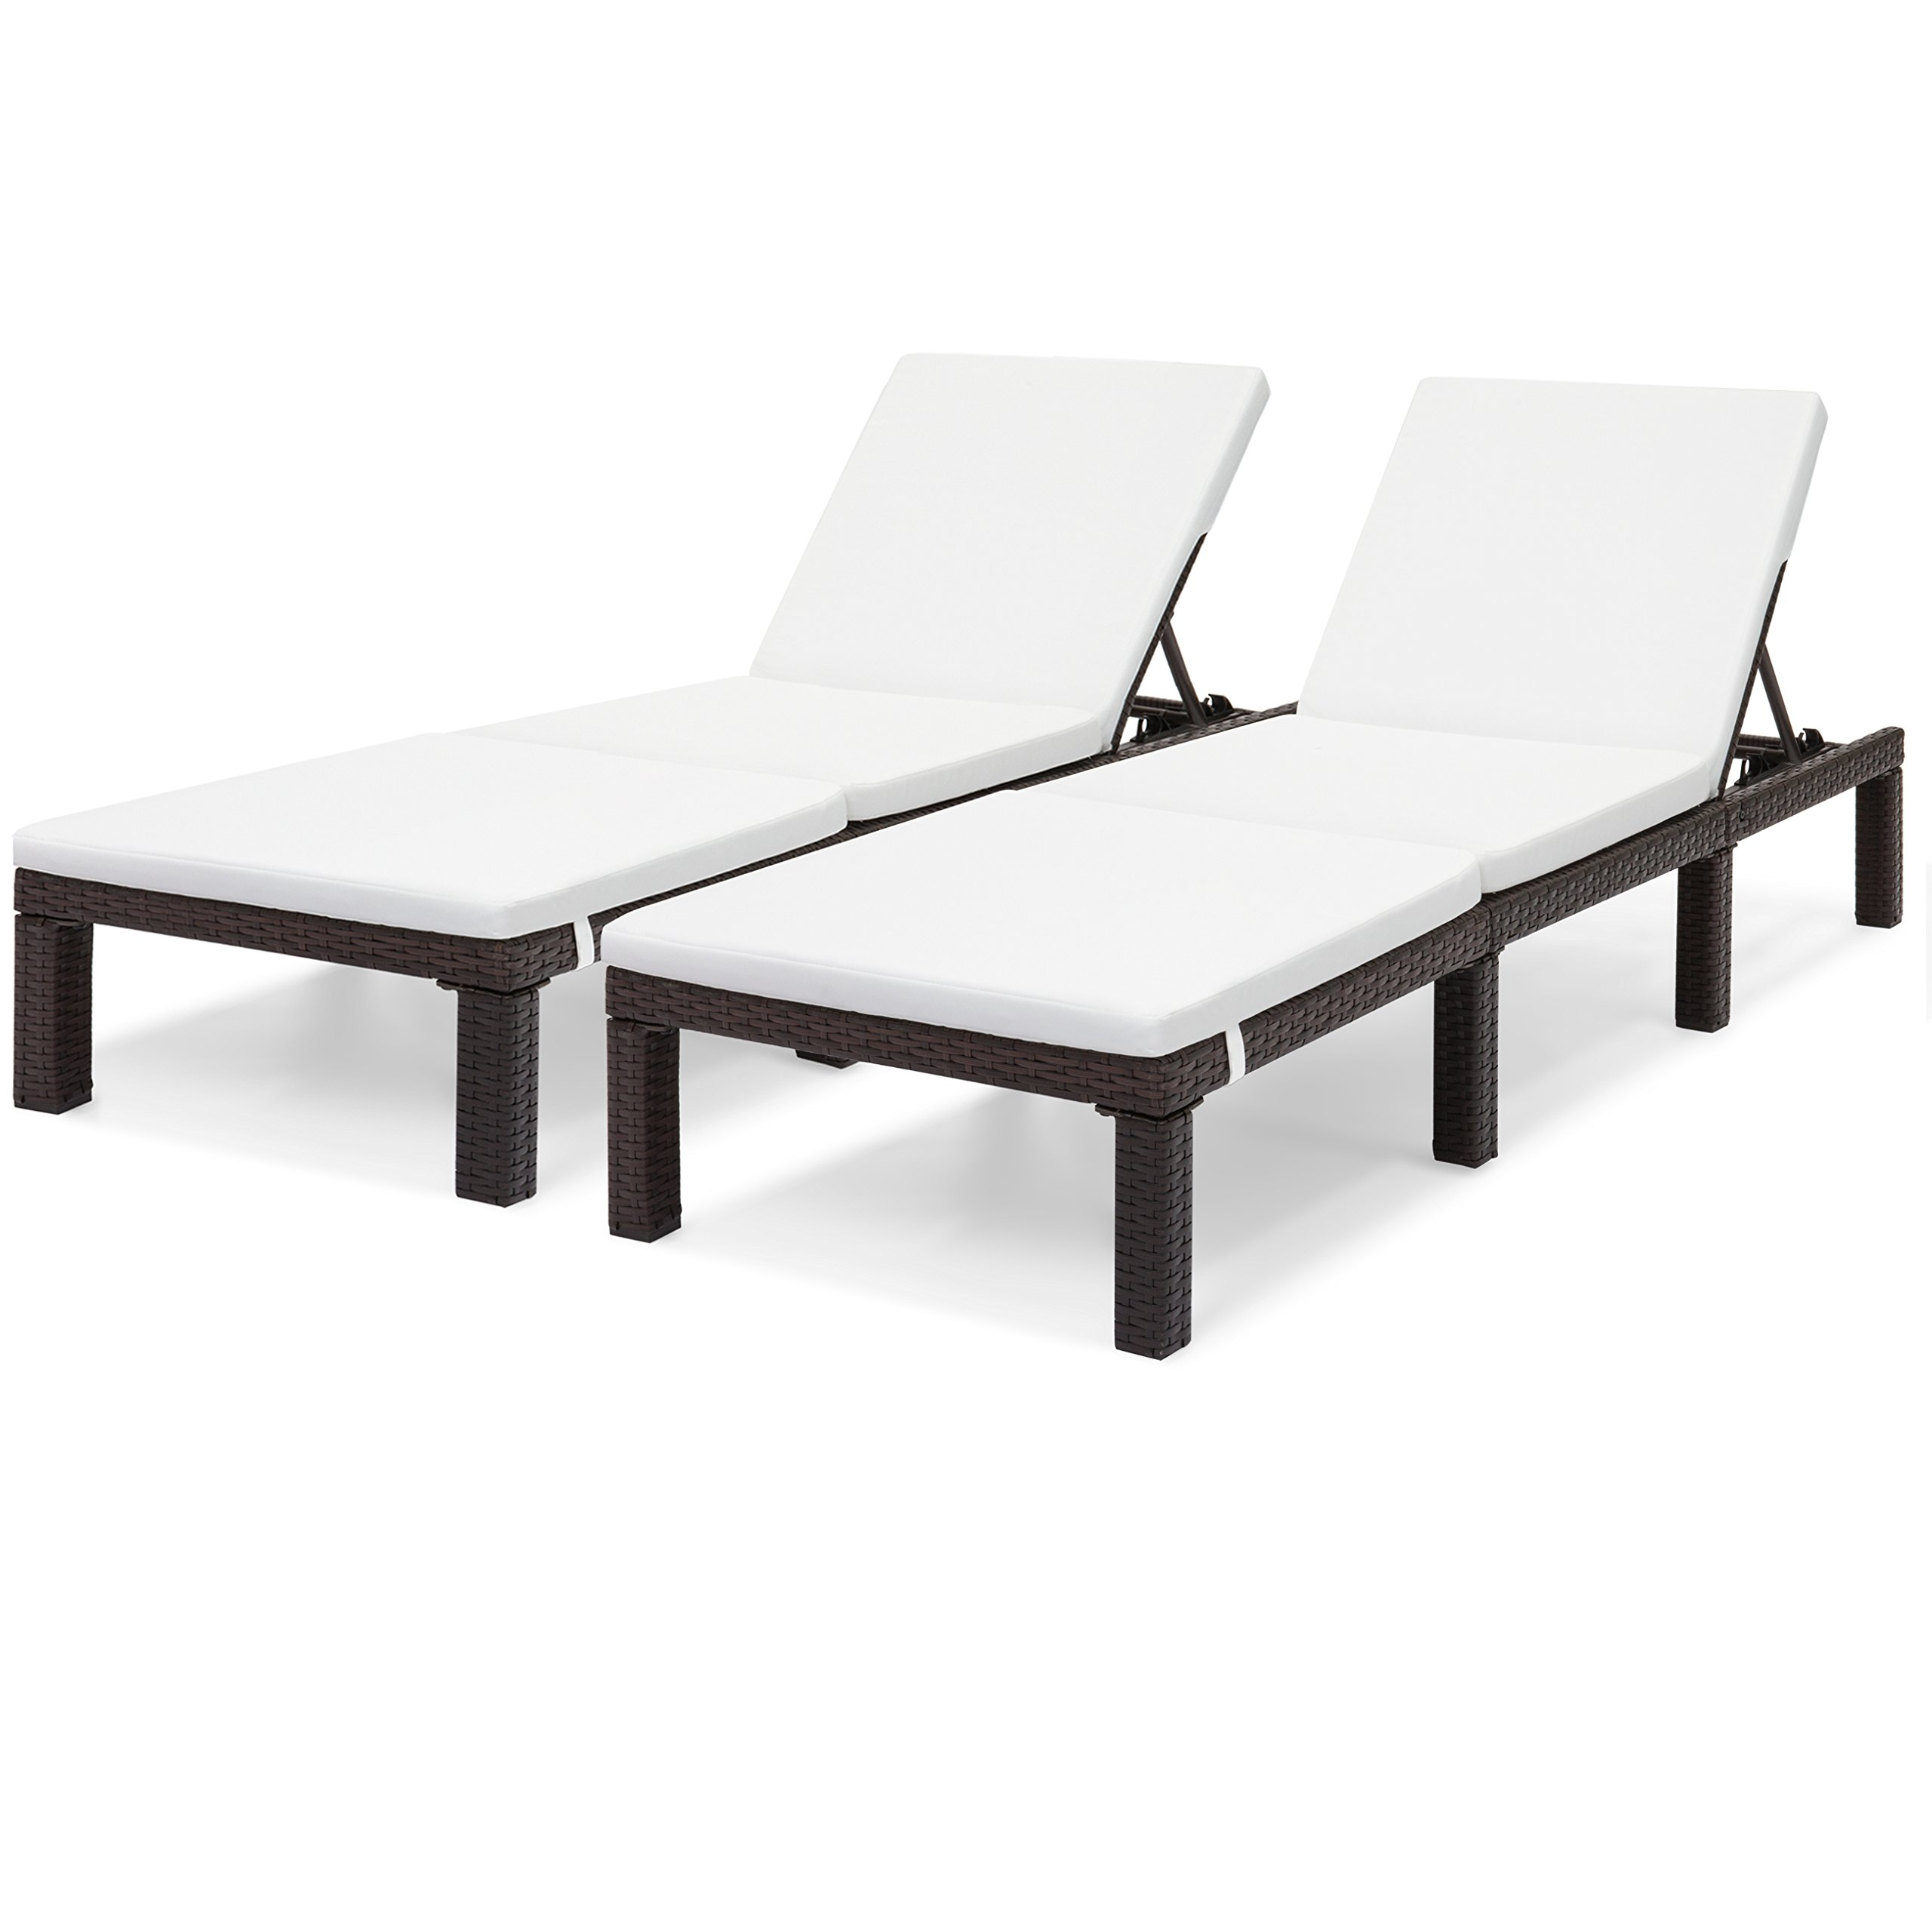 Best Choice Products Set of 2 Wicker Adjustable Chaise Loungers w/Cushions - White